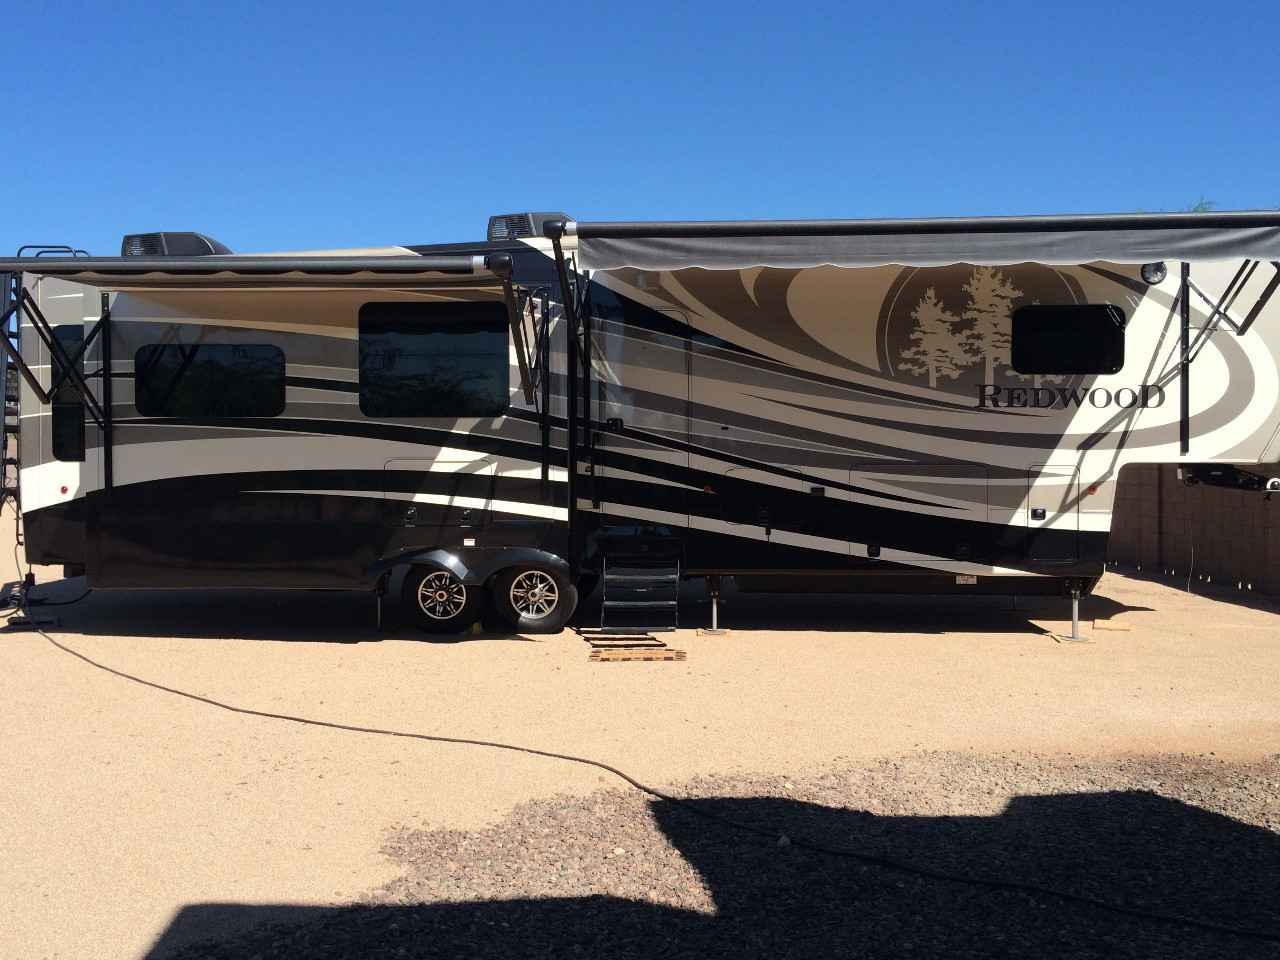 2015 Used Redwood 36rl Fifth Wheel In Oregon Or